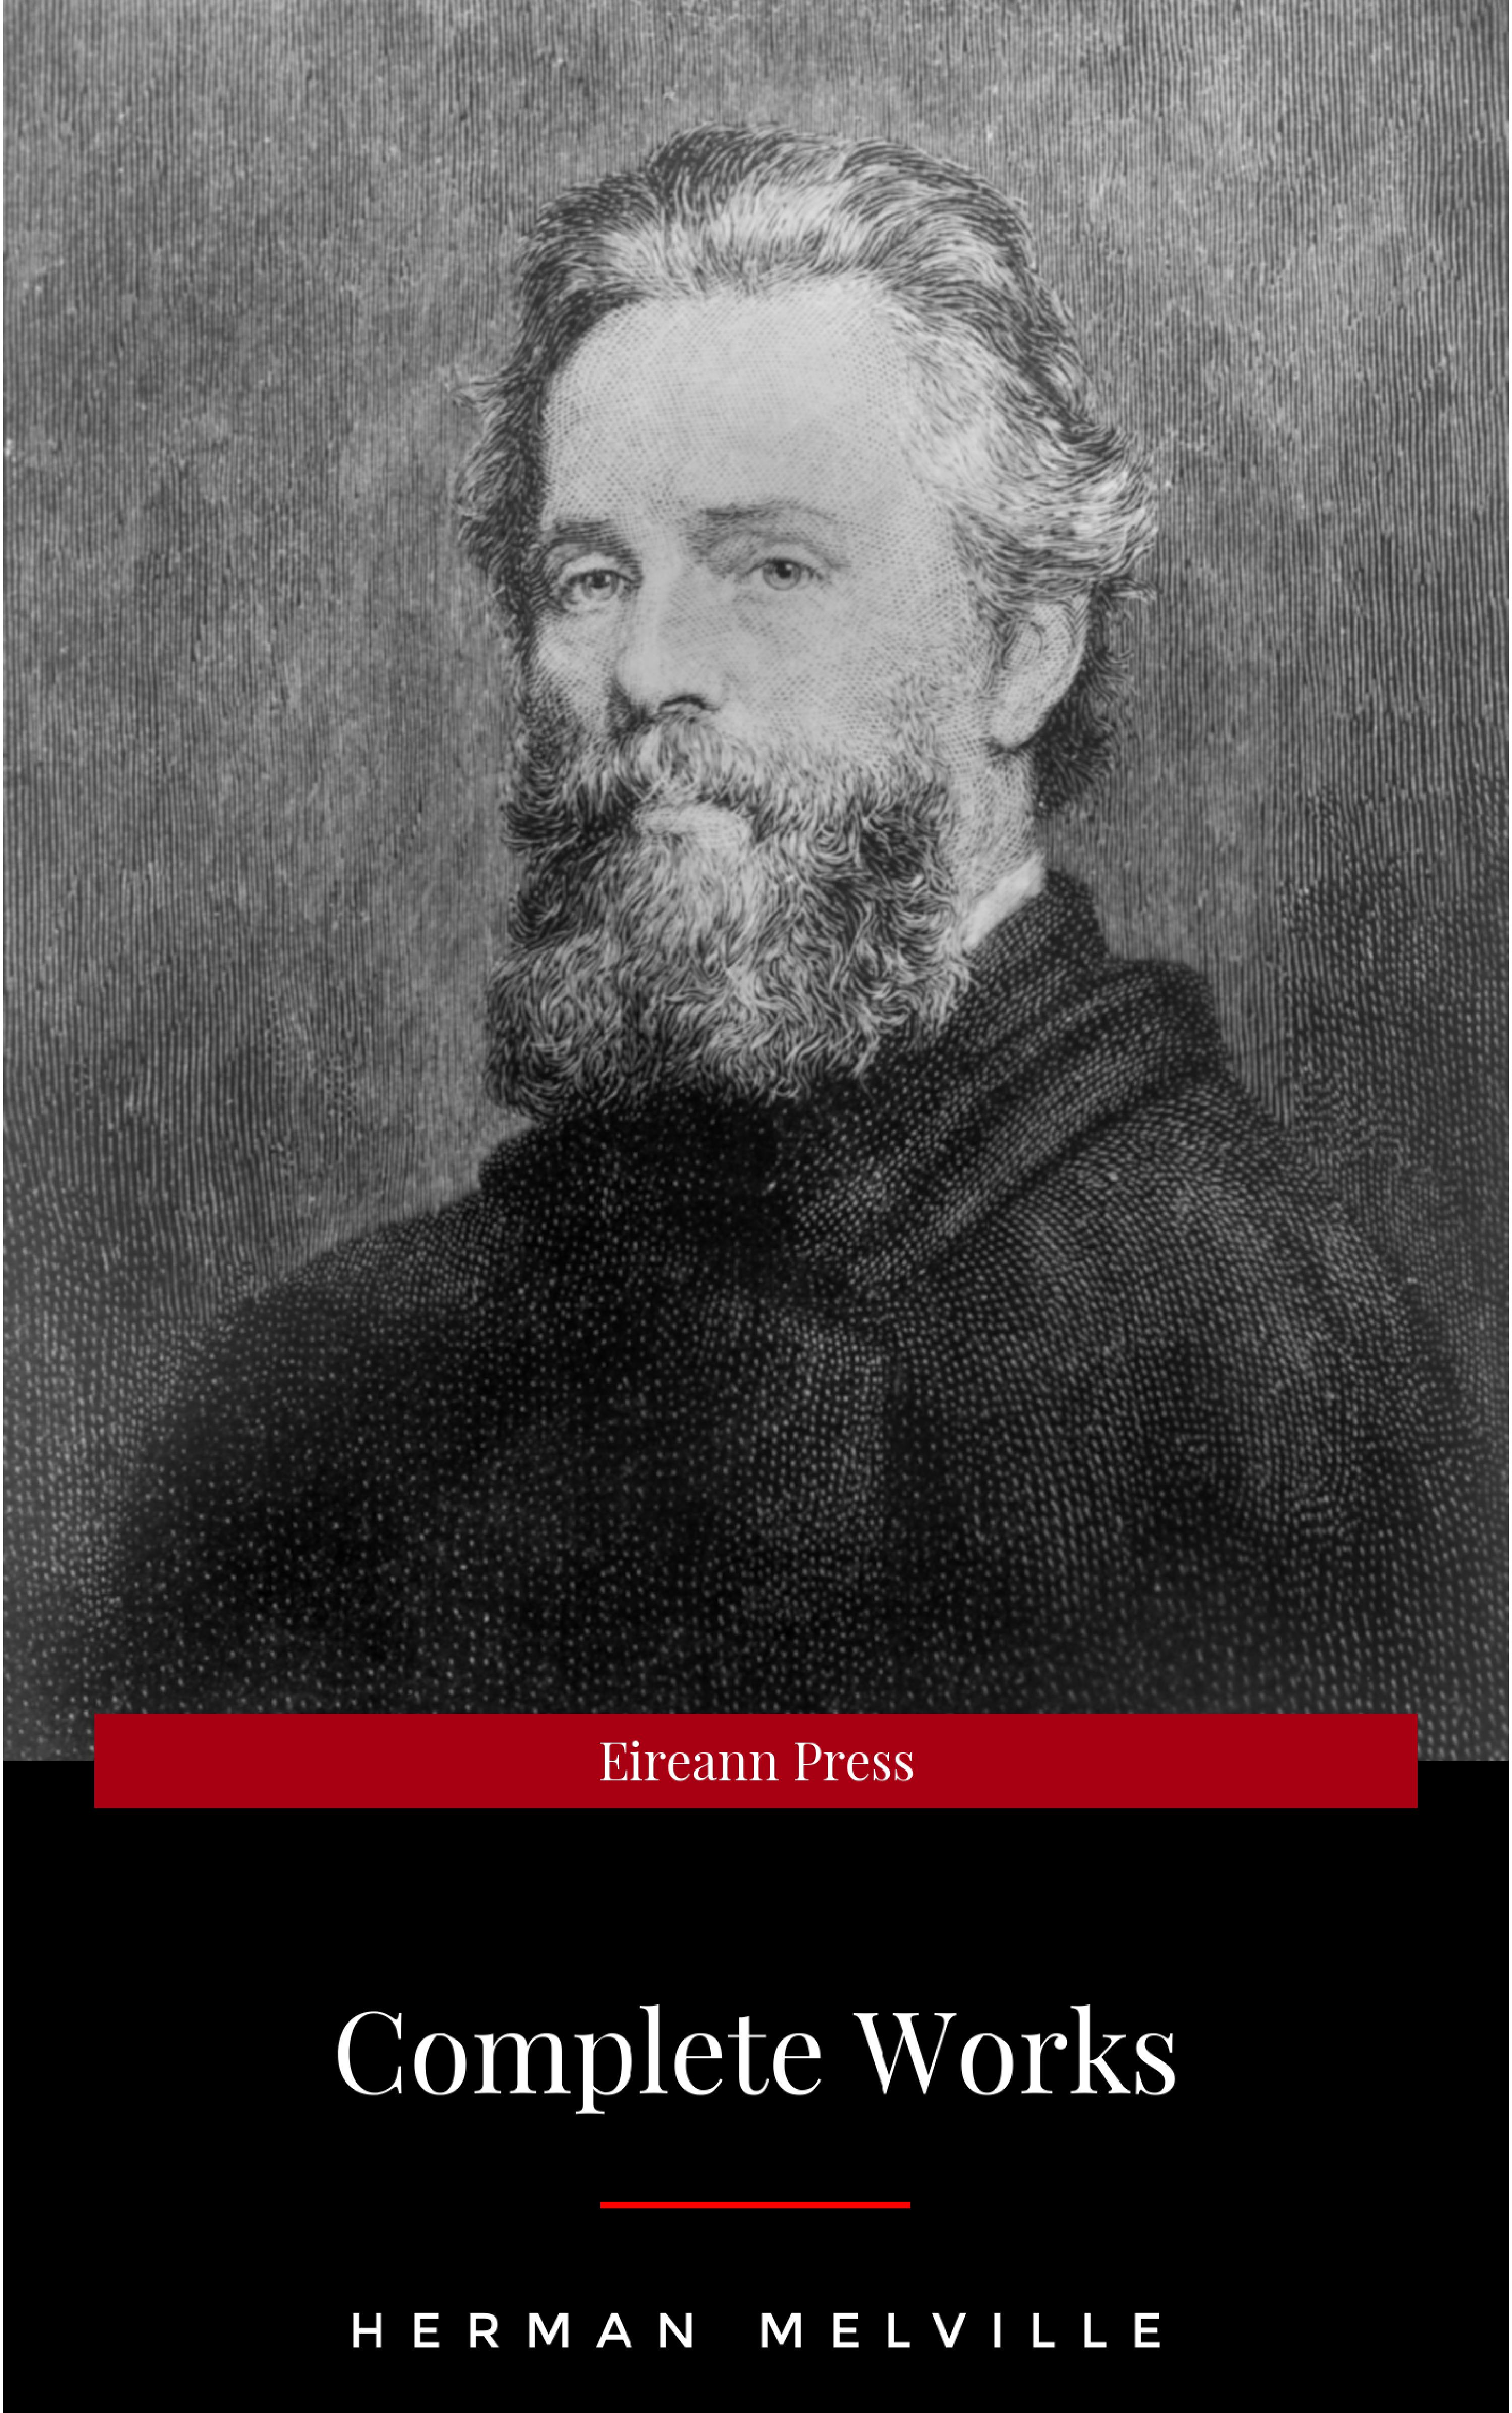 Herman Melville The Complete Works of Herman Melville (15 Complete Works of Herman Melville Including Moby Dick, Omoo, The Confidence-Man, The Piazza Tales, I and My Chimney, Redburn, Israel Potter, And More) melville herman the apple tree table and other sketches